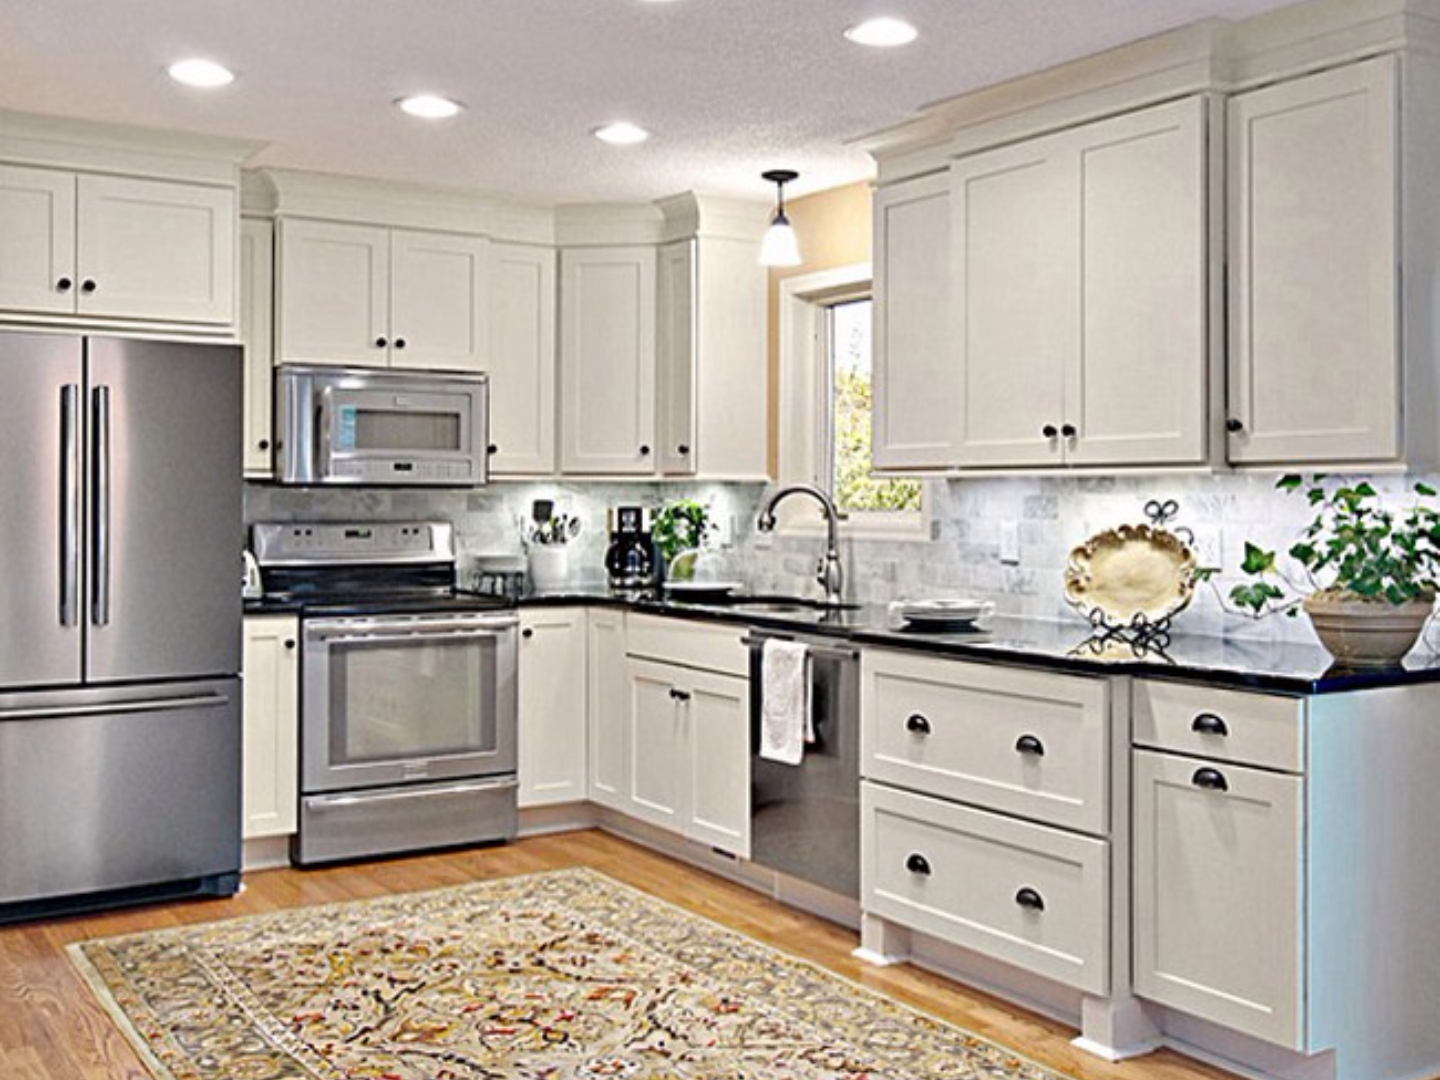 spray painting kitchen cabinets white cabinet refinishing castle rock cabinets refinishing and 26532